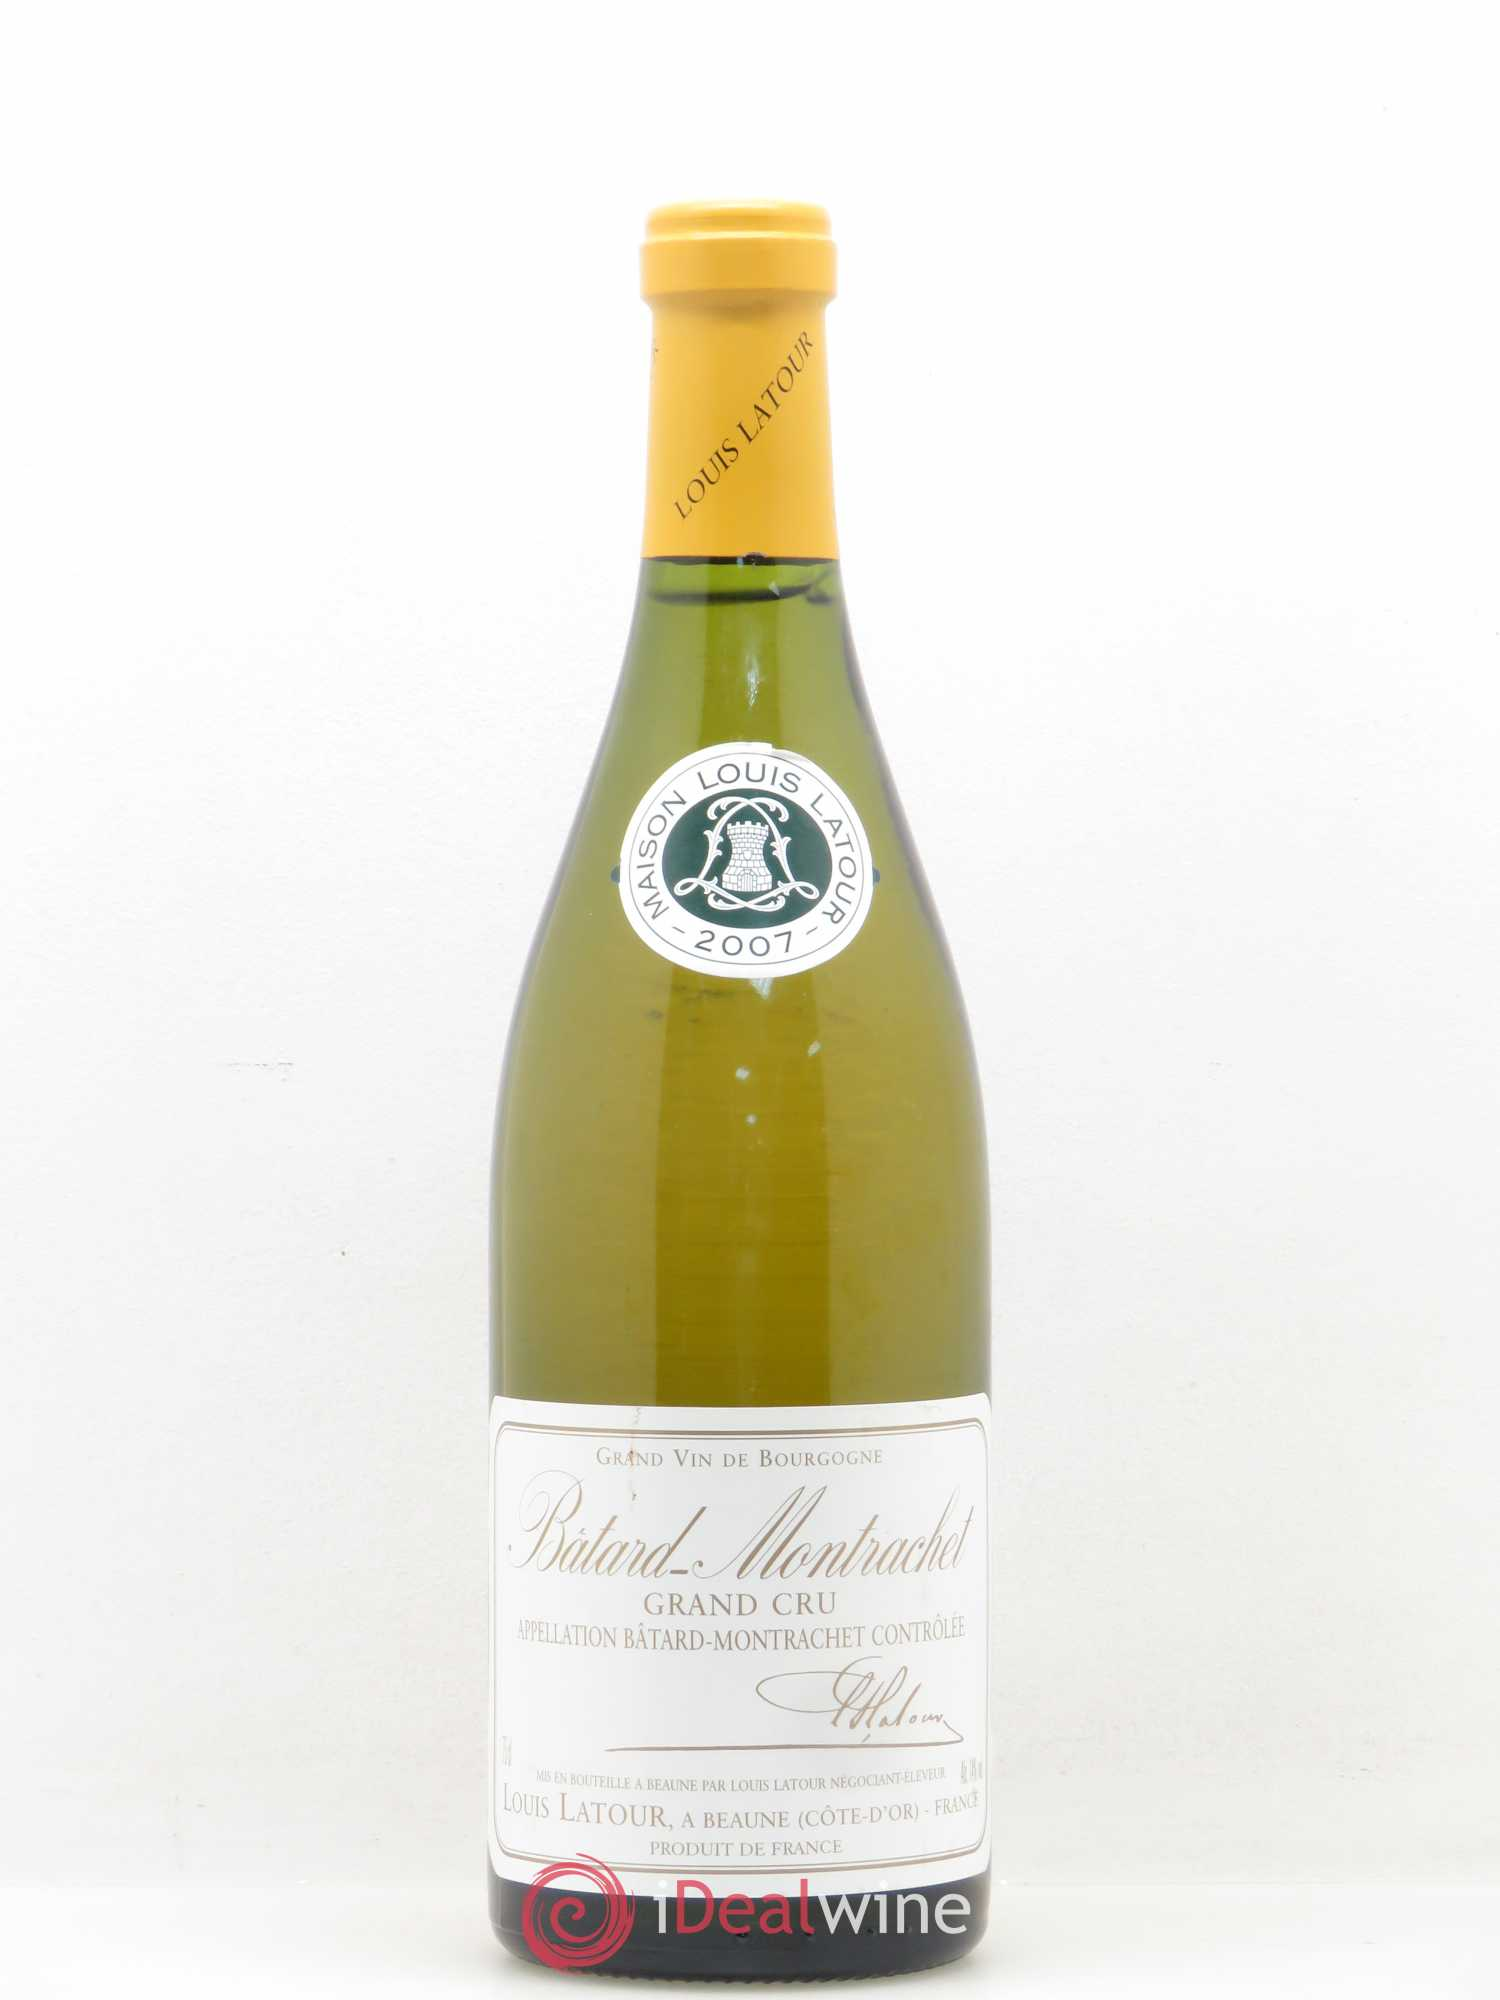 Bâtard-Montrachet Grand Cru Louis Latour  2007 - Lot of 1 Bottle